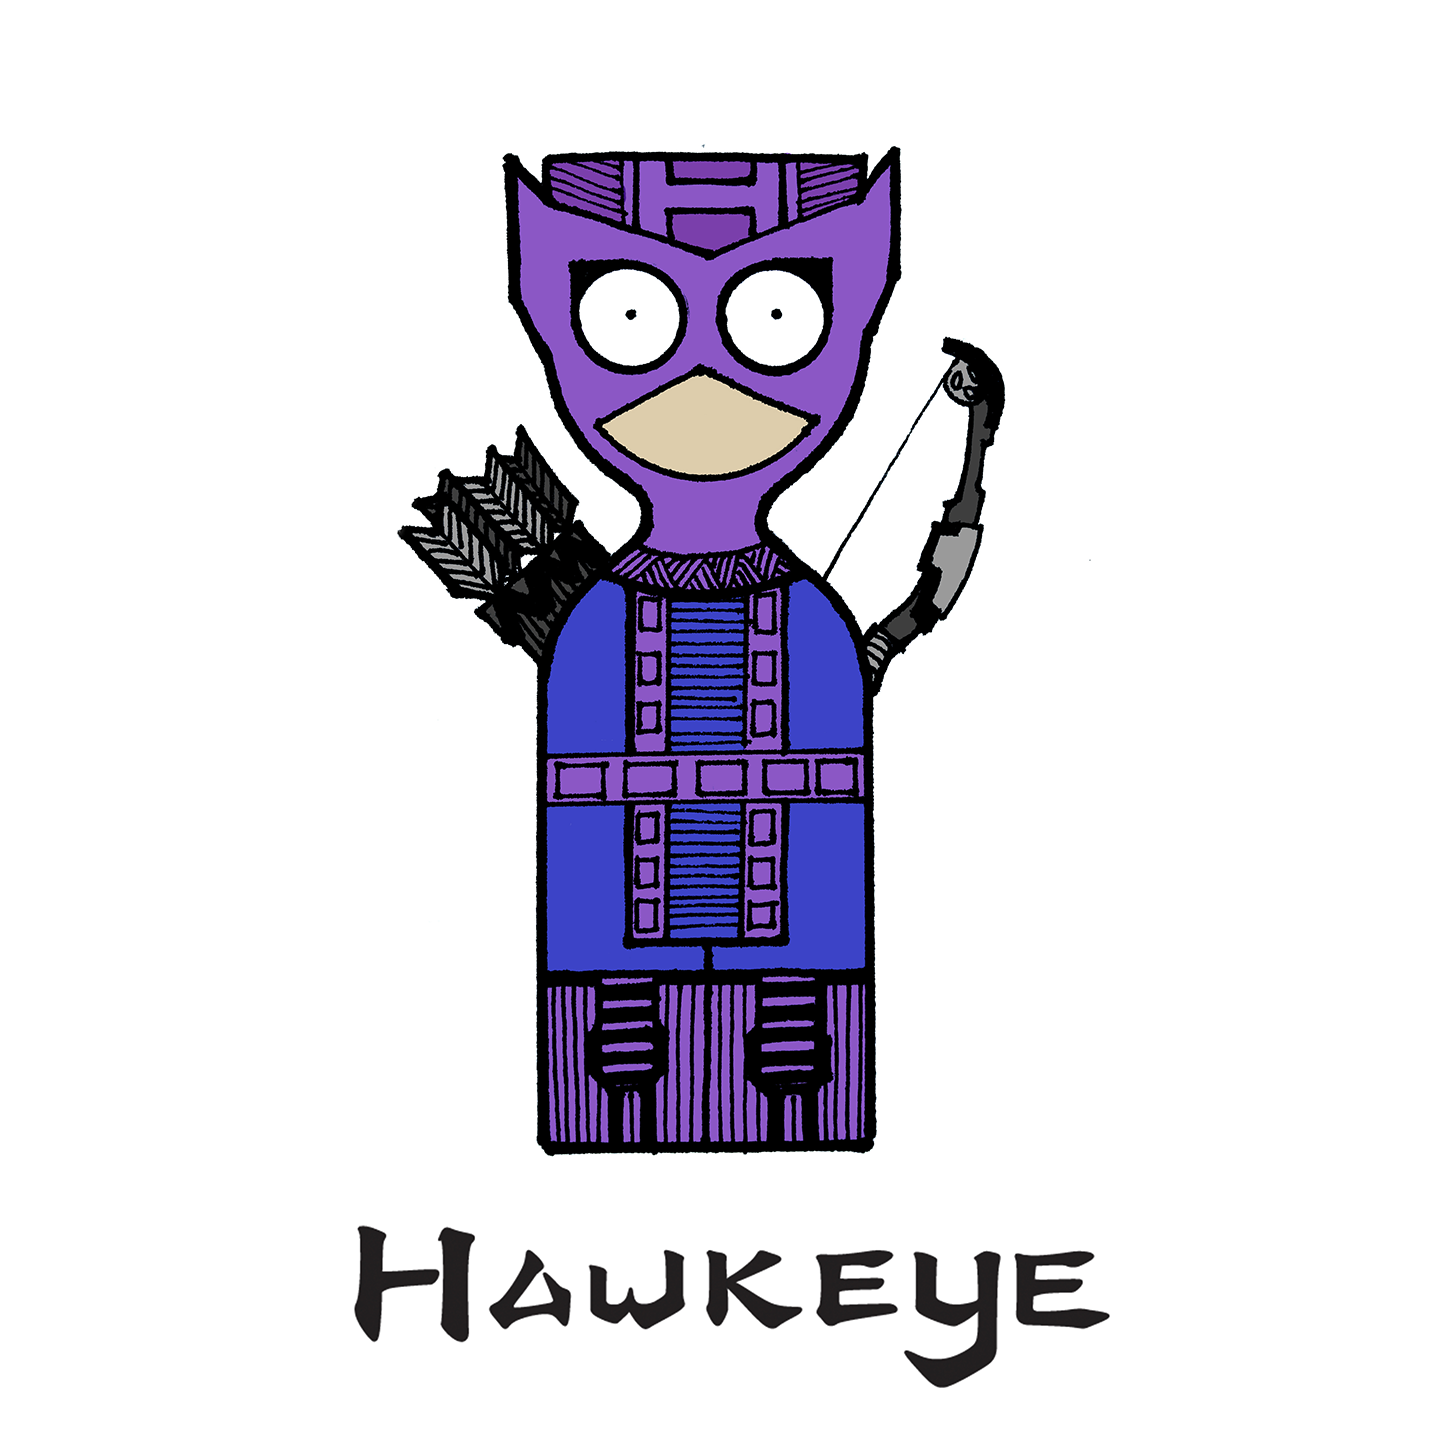 13_hawkeye_color.png